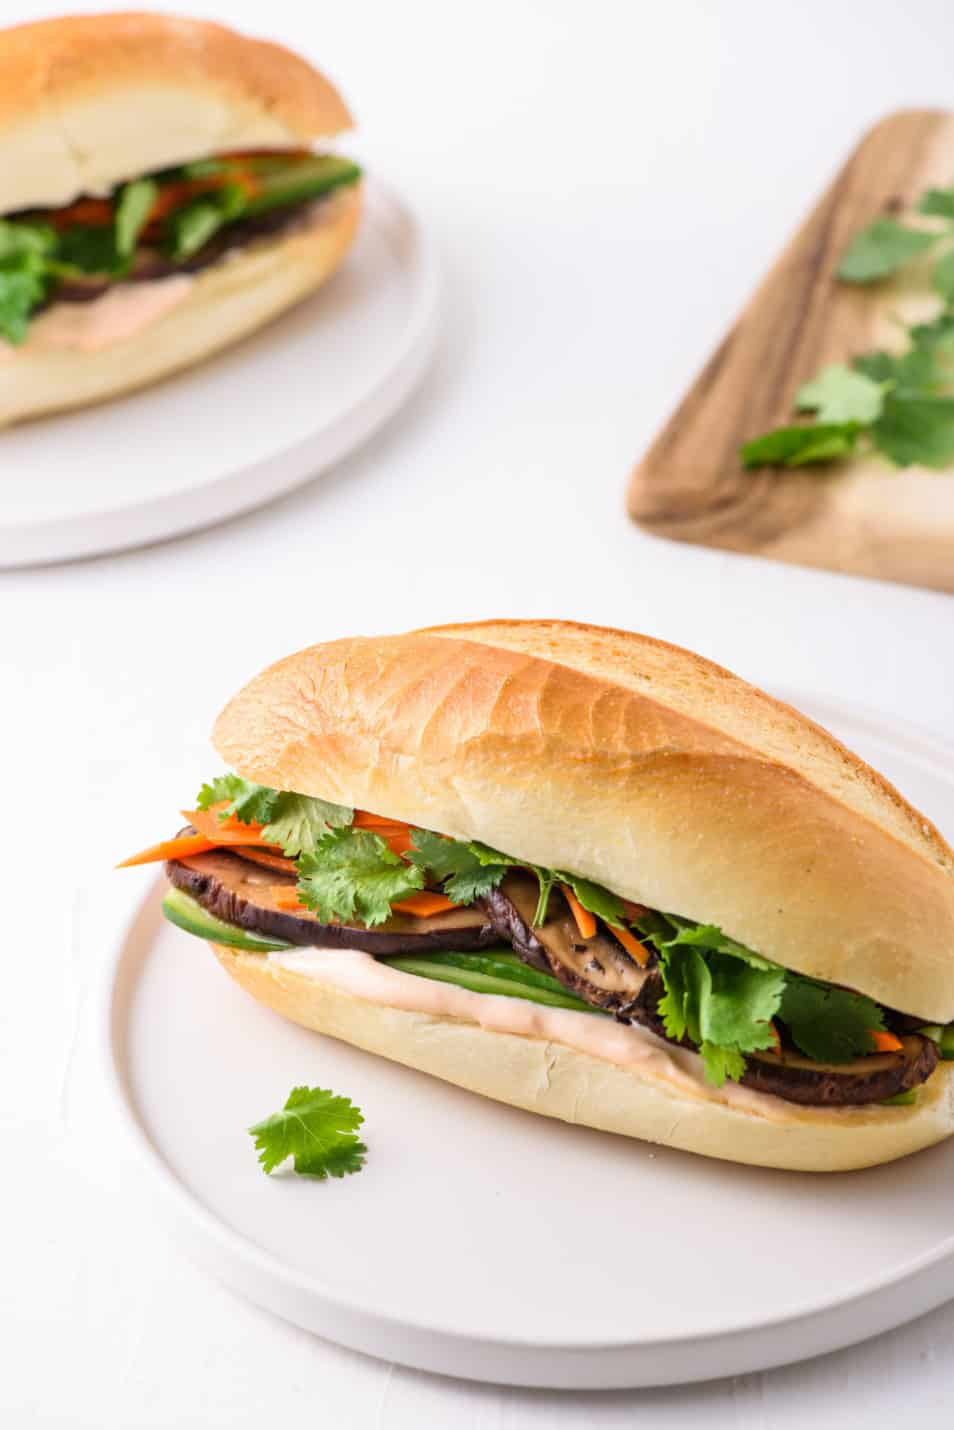 2 vegetarian banh mi sandwiches with portobello mushrooms and pickled carrots on white plates with a wooden cutting board in the background